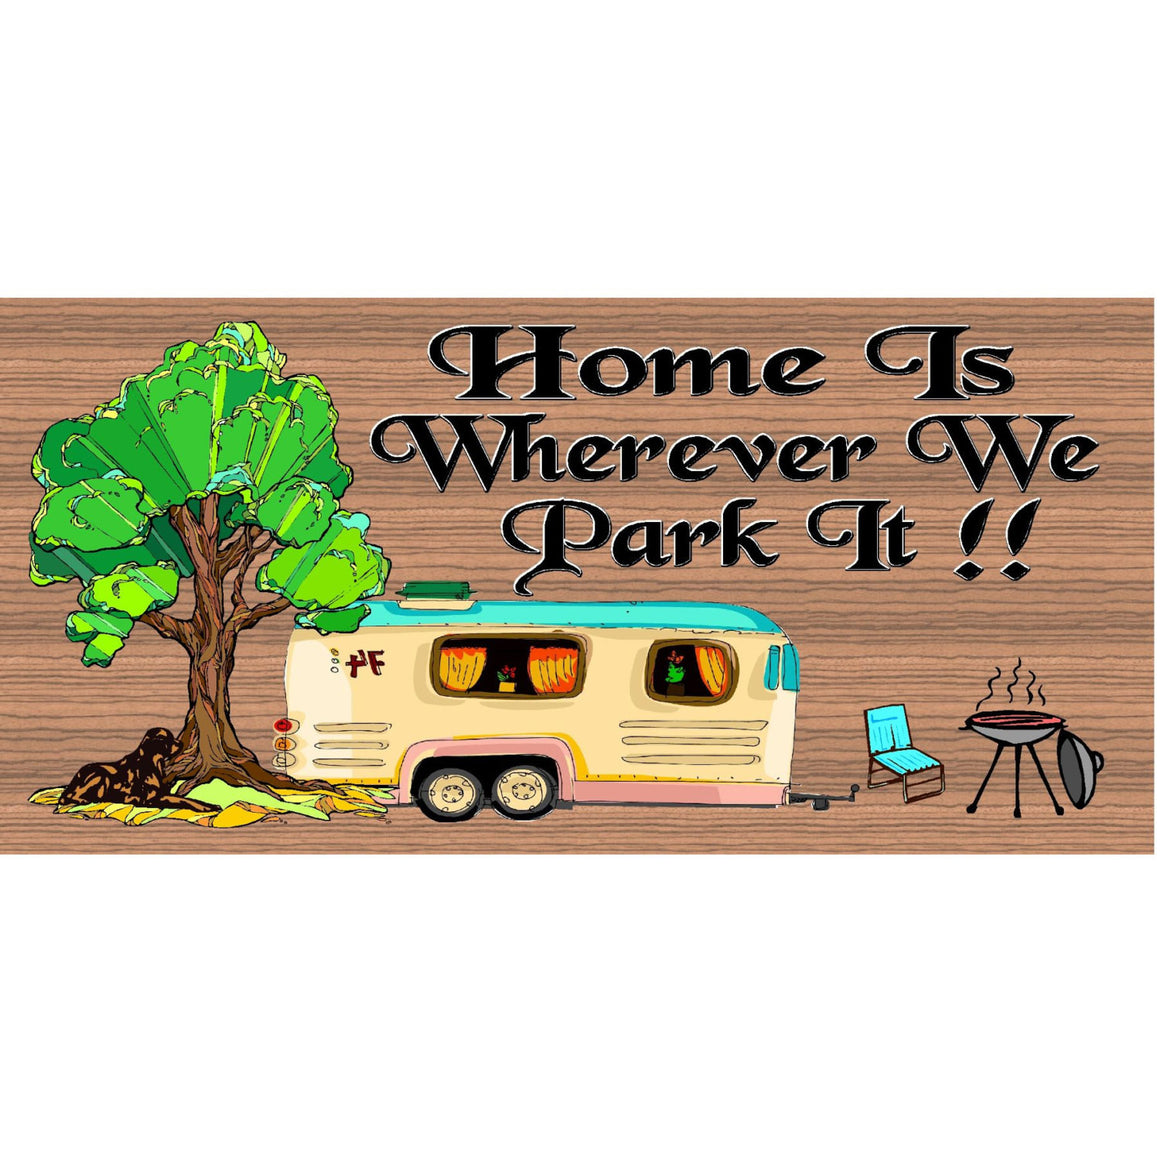 Camping Wood Signs -Handmade Wood Sign Home is Wherever you Park it -GS 648 - Camper RV Wood Sign